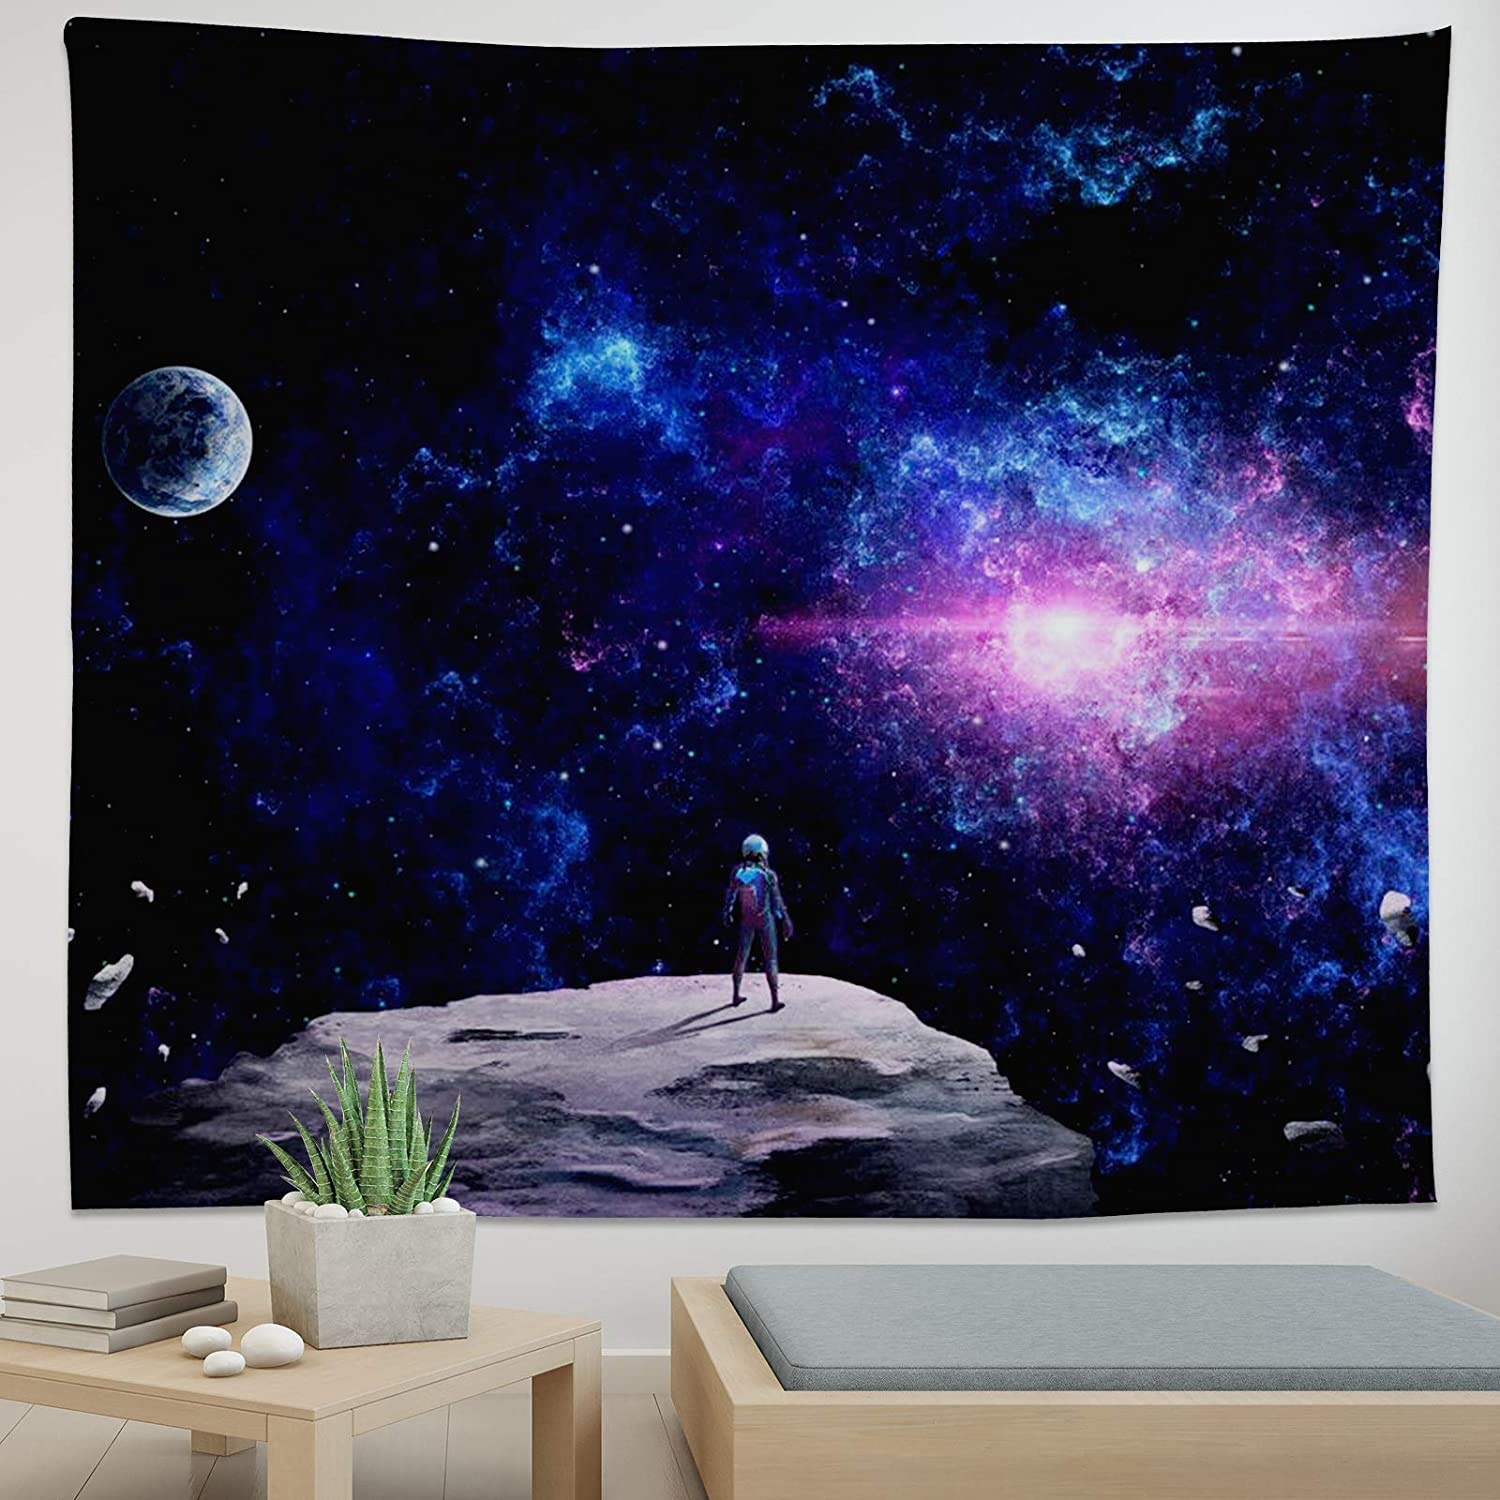 Astronaut Tapestry Fantasy Space Tapestry Galaxy Tapestry for Bedroom Living Room-H51.2×W59.1 inch